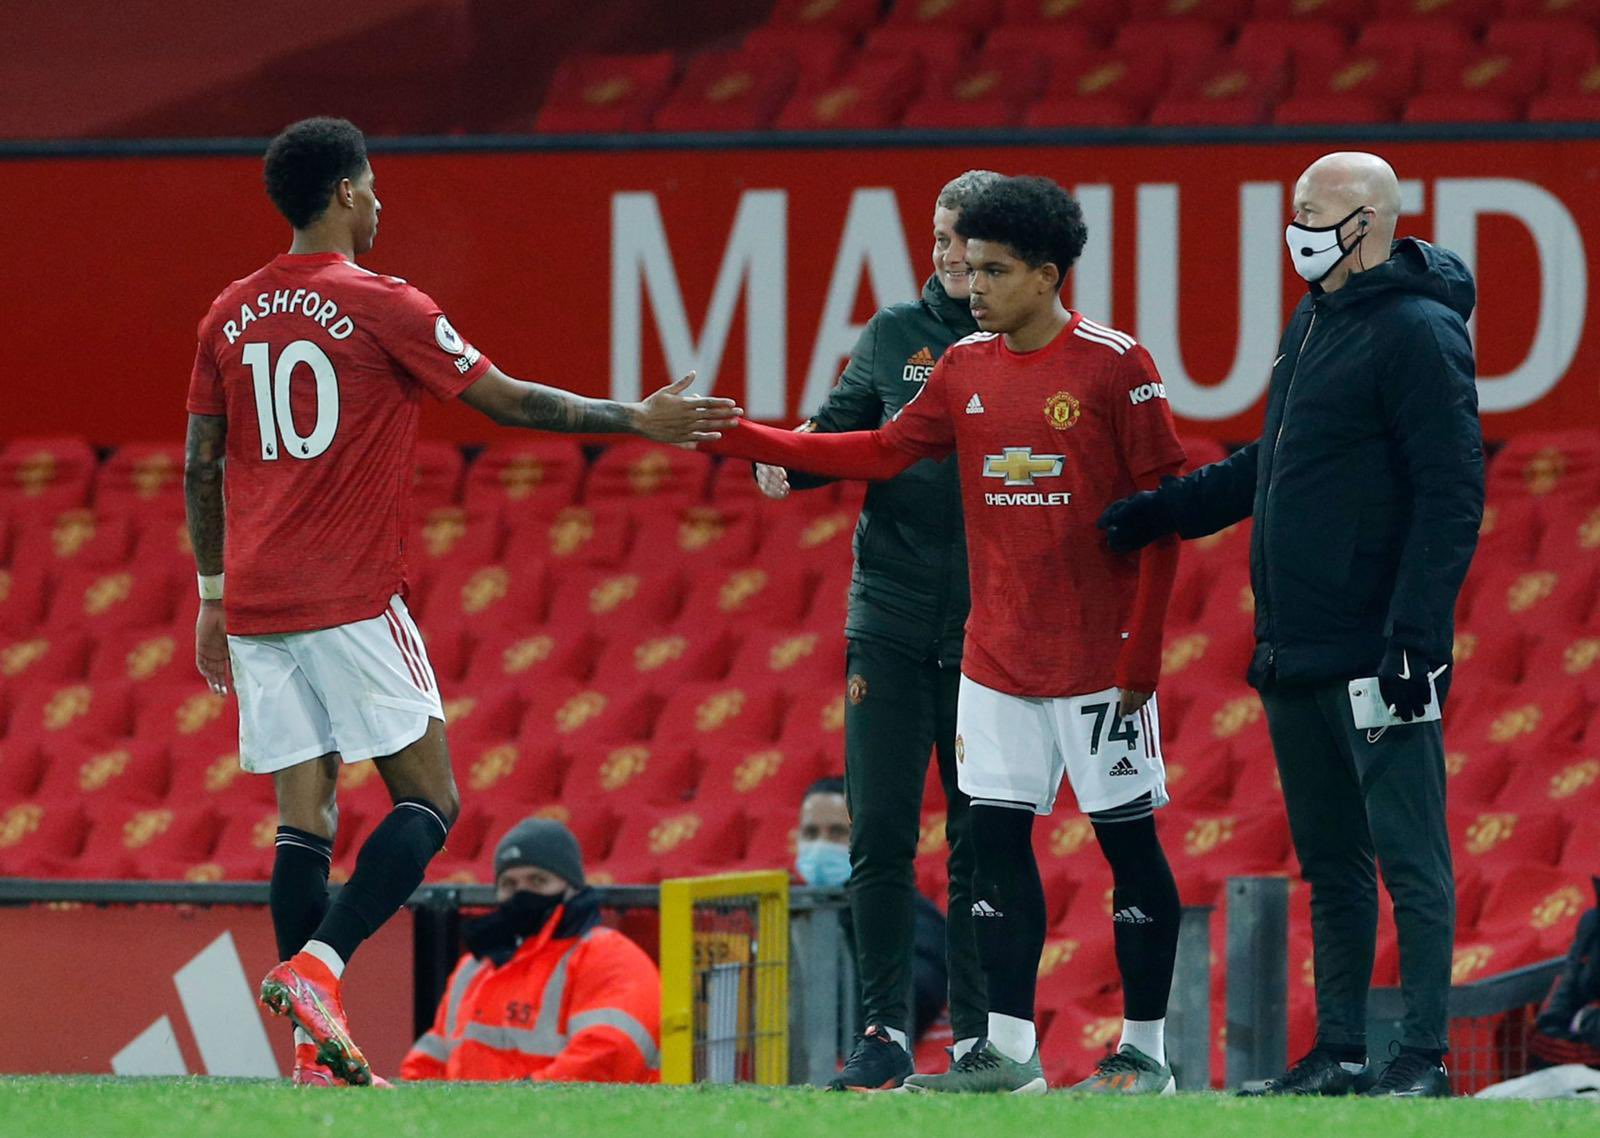 Shoretire Unhappy Manchester United Debut Happened Without Fans